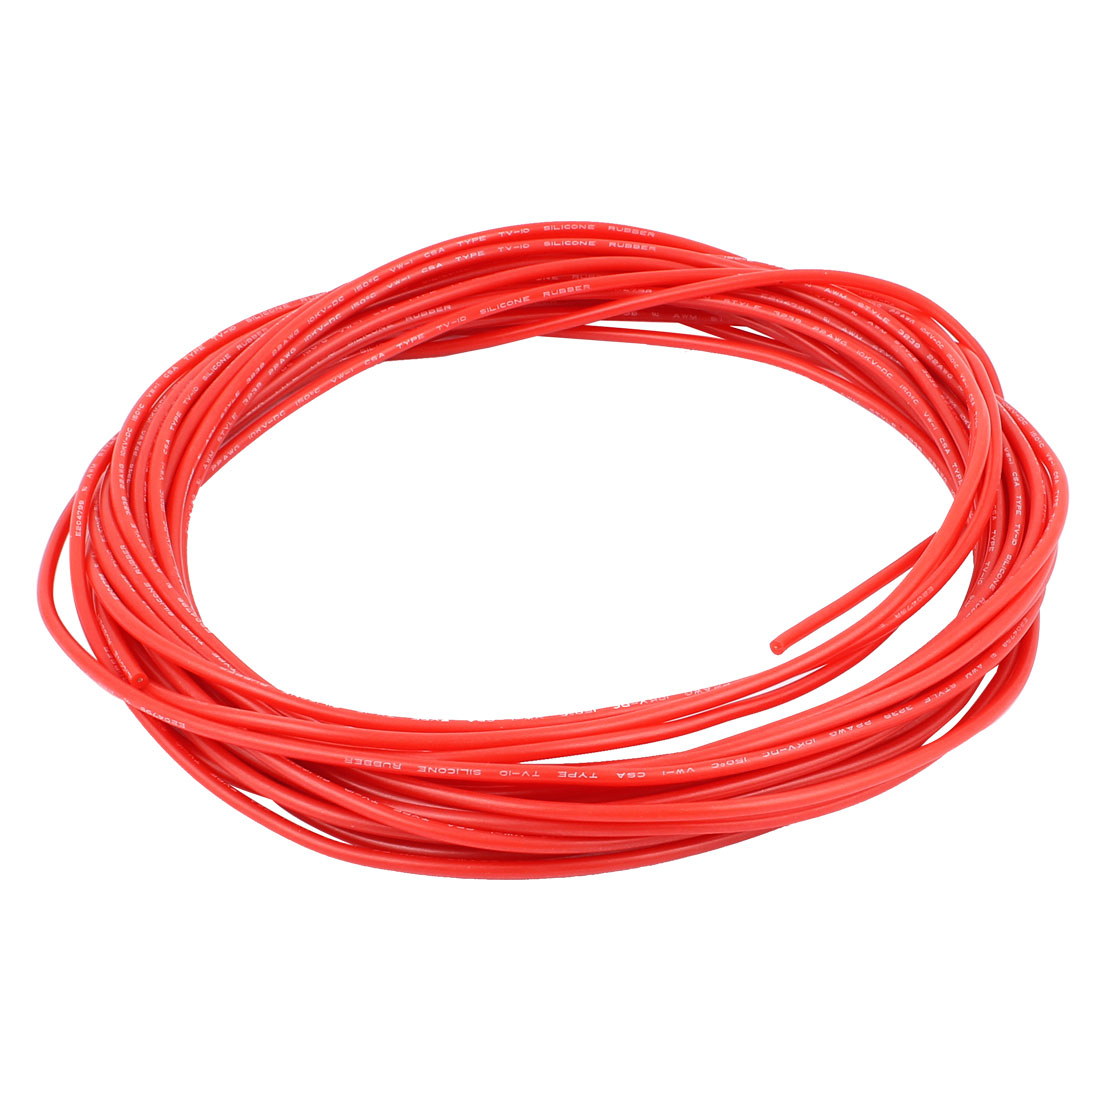 10M 32.8Ft 24AWG 10KV Electric Copper Core Flexible Silicone Wire Cable Red